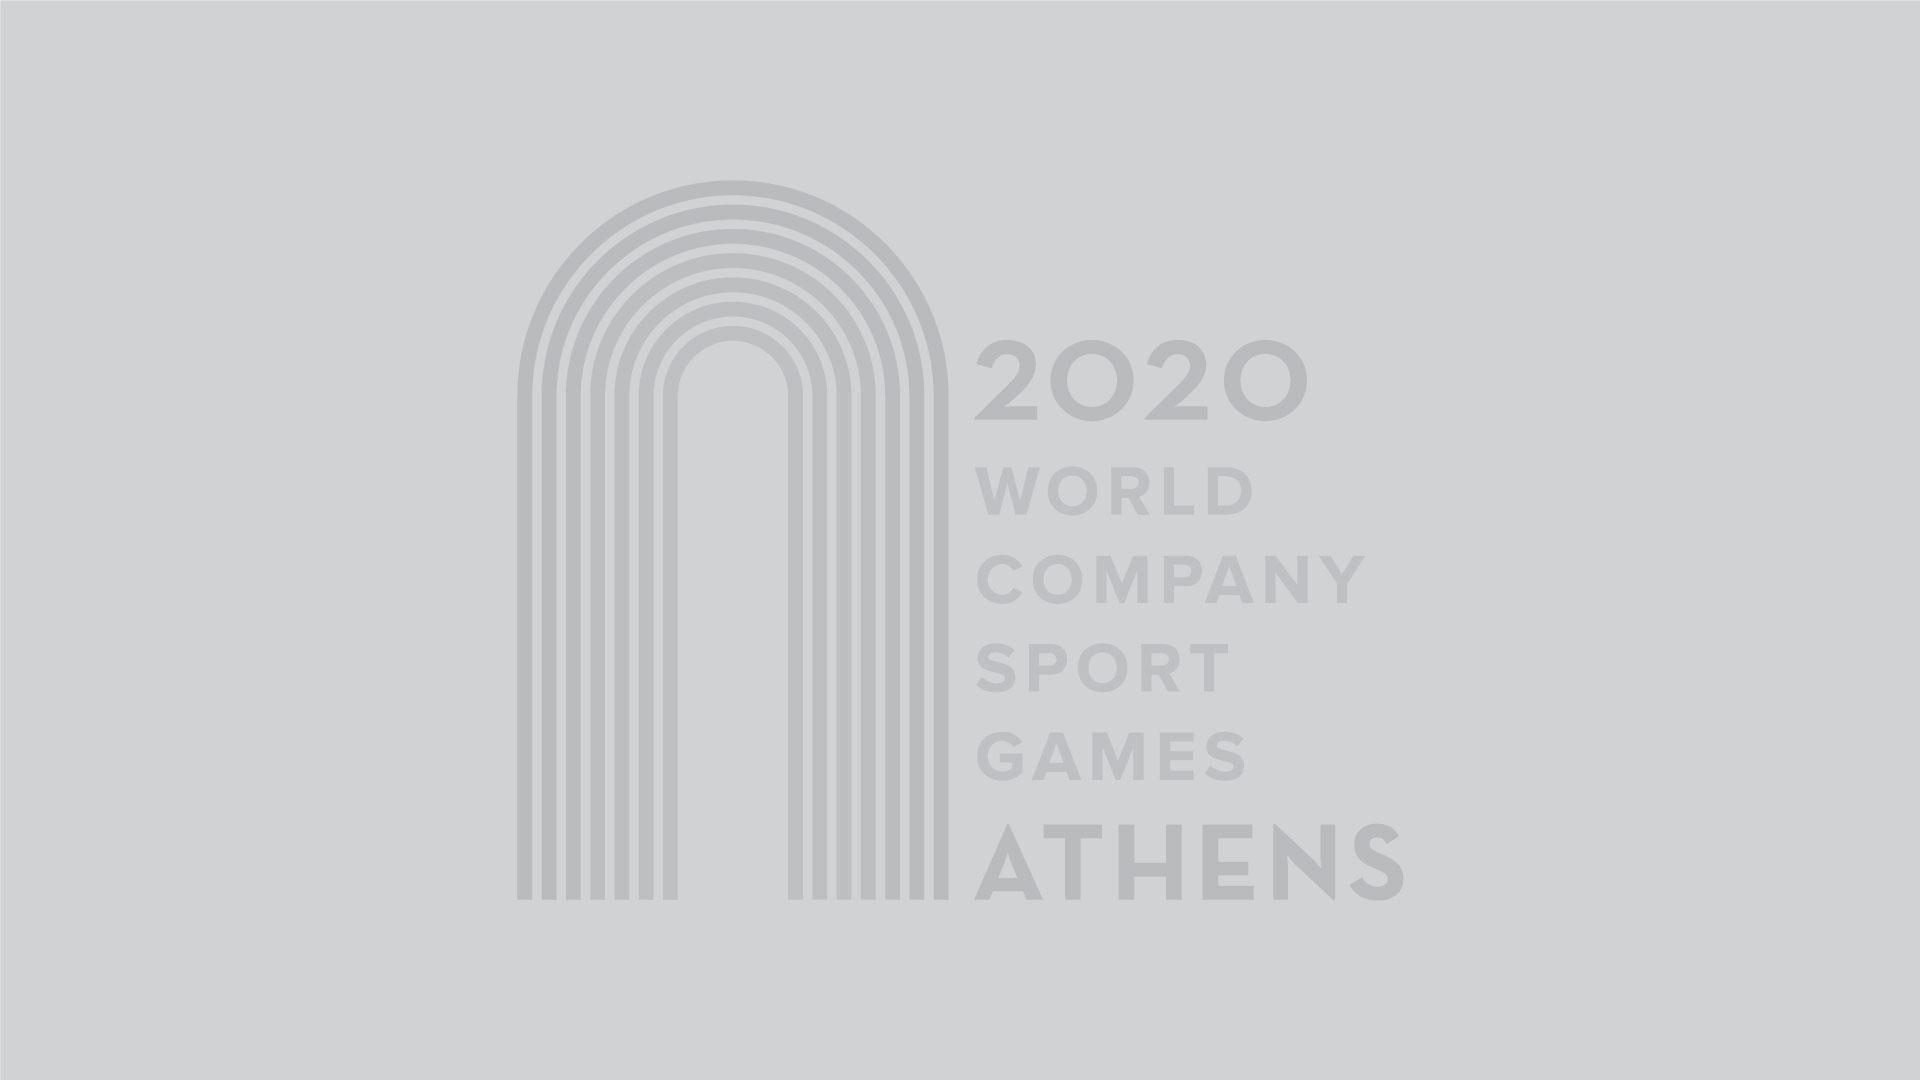 https://www.athens2020.org/sites/default/files/wcsg2020.jpg